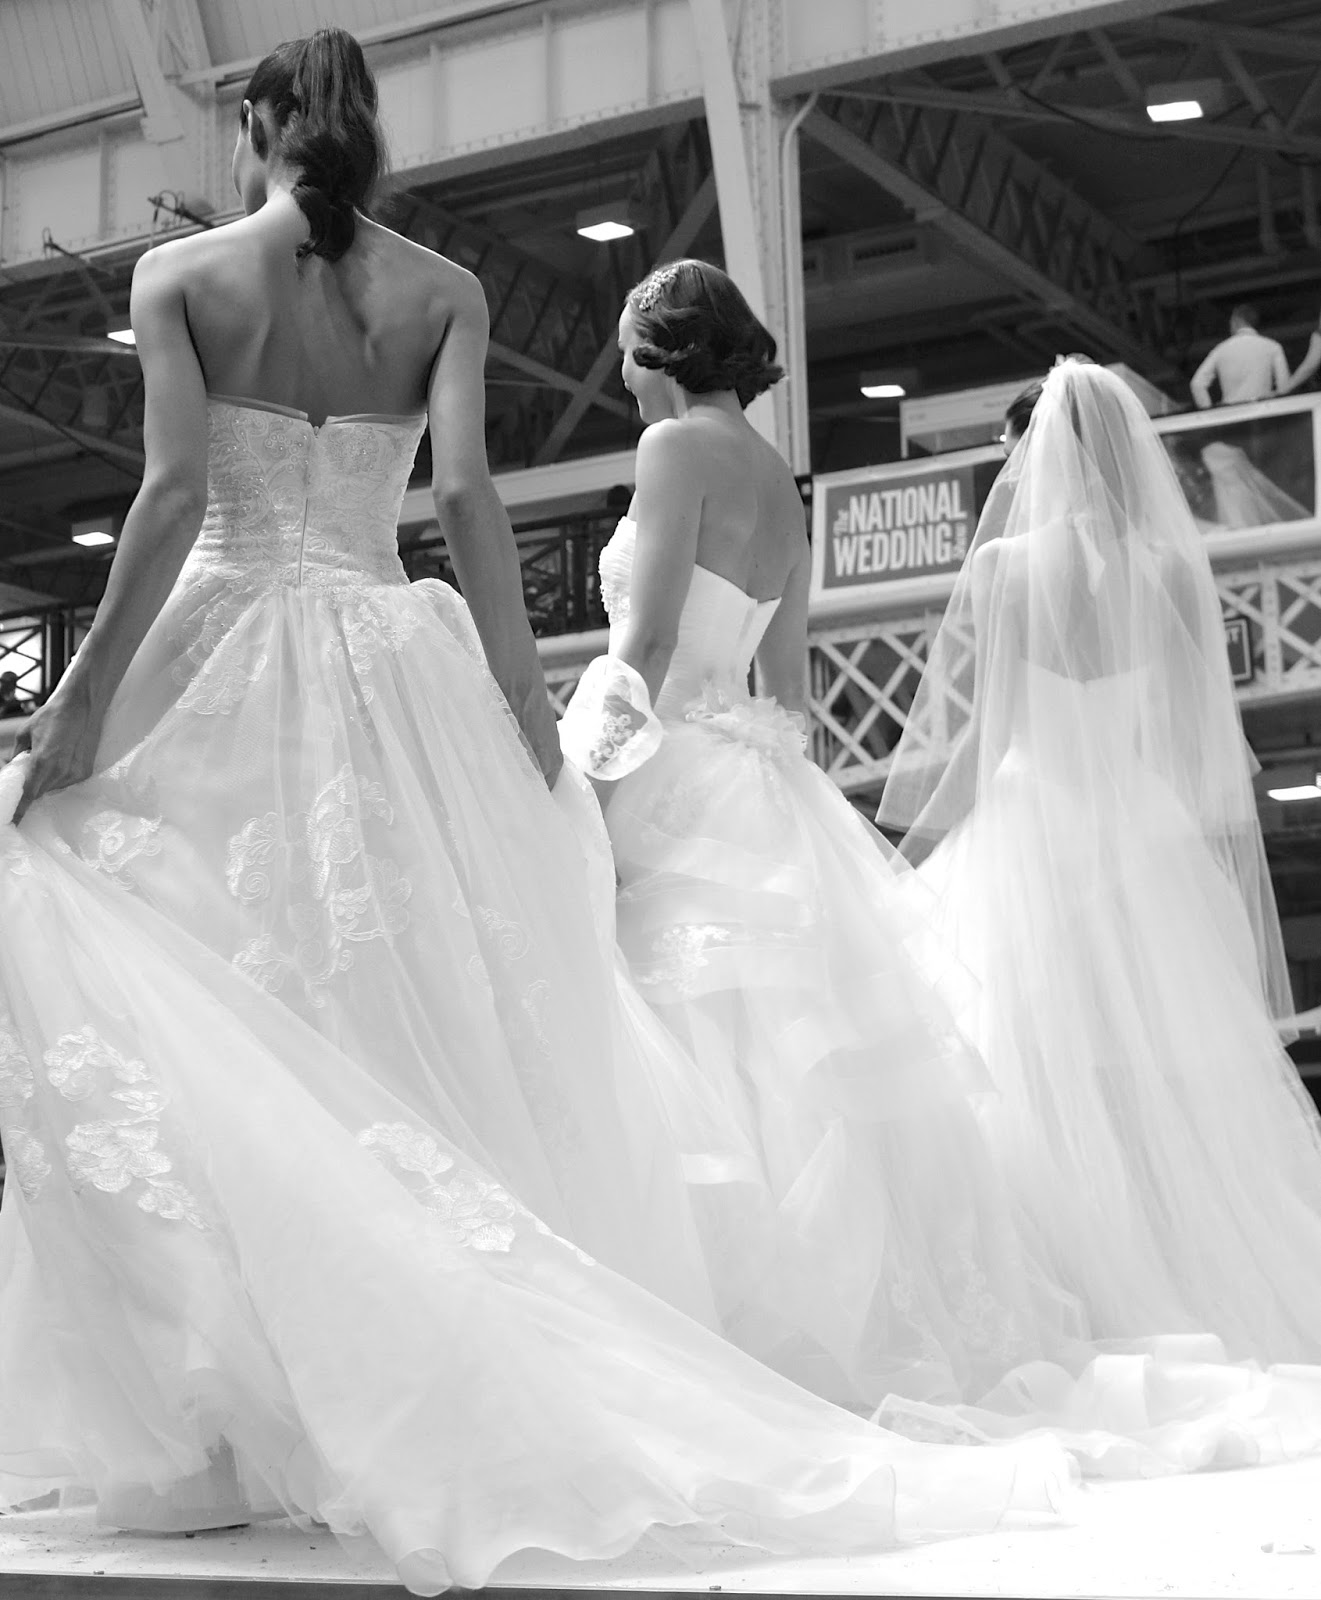 catwalk models at the national wedding show